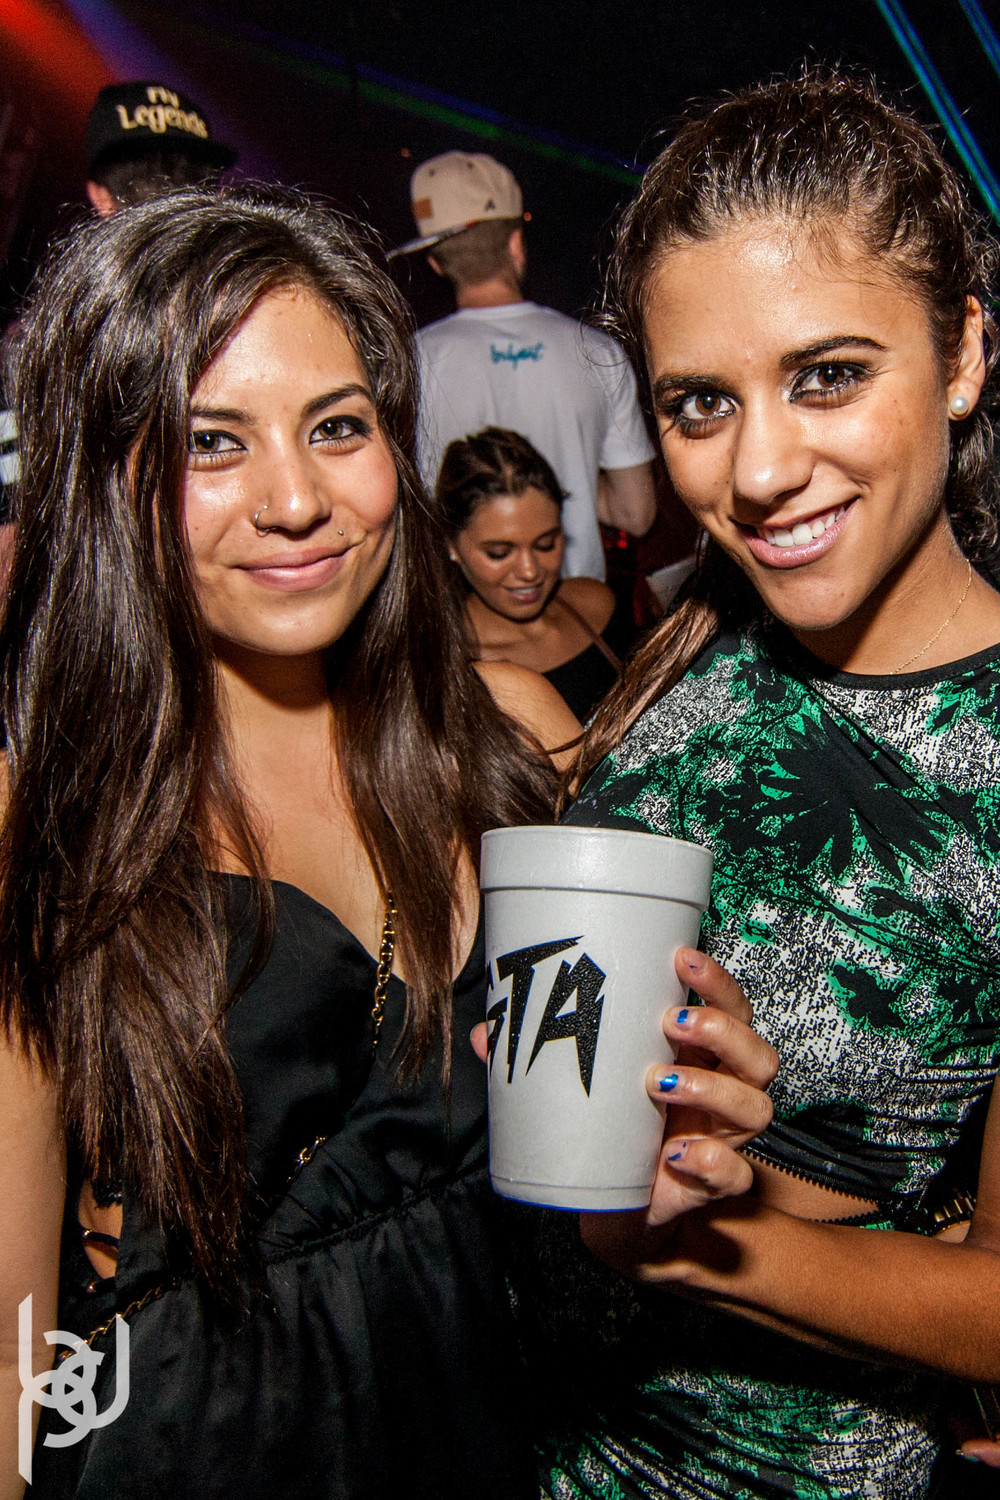 GTA at Create Night Club (CA) bdp 110714-39.jpg